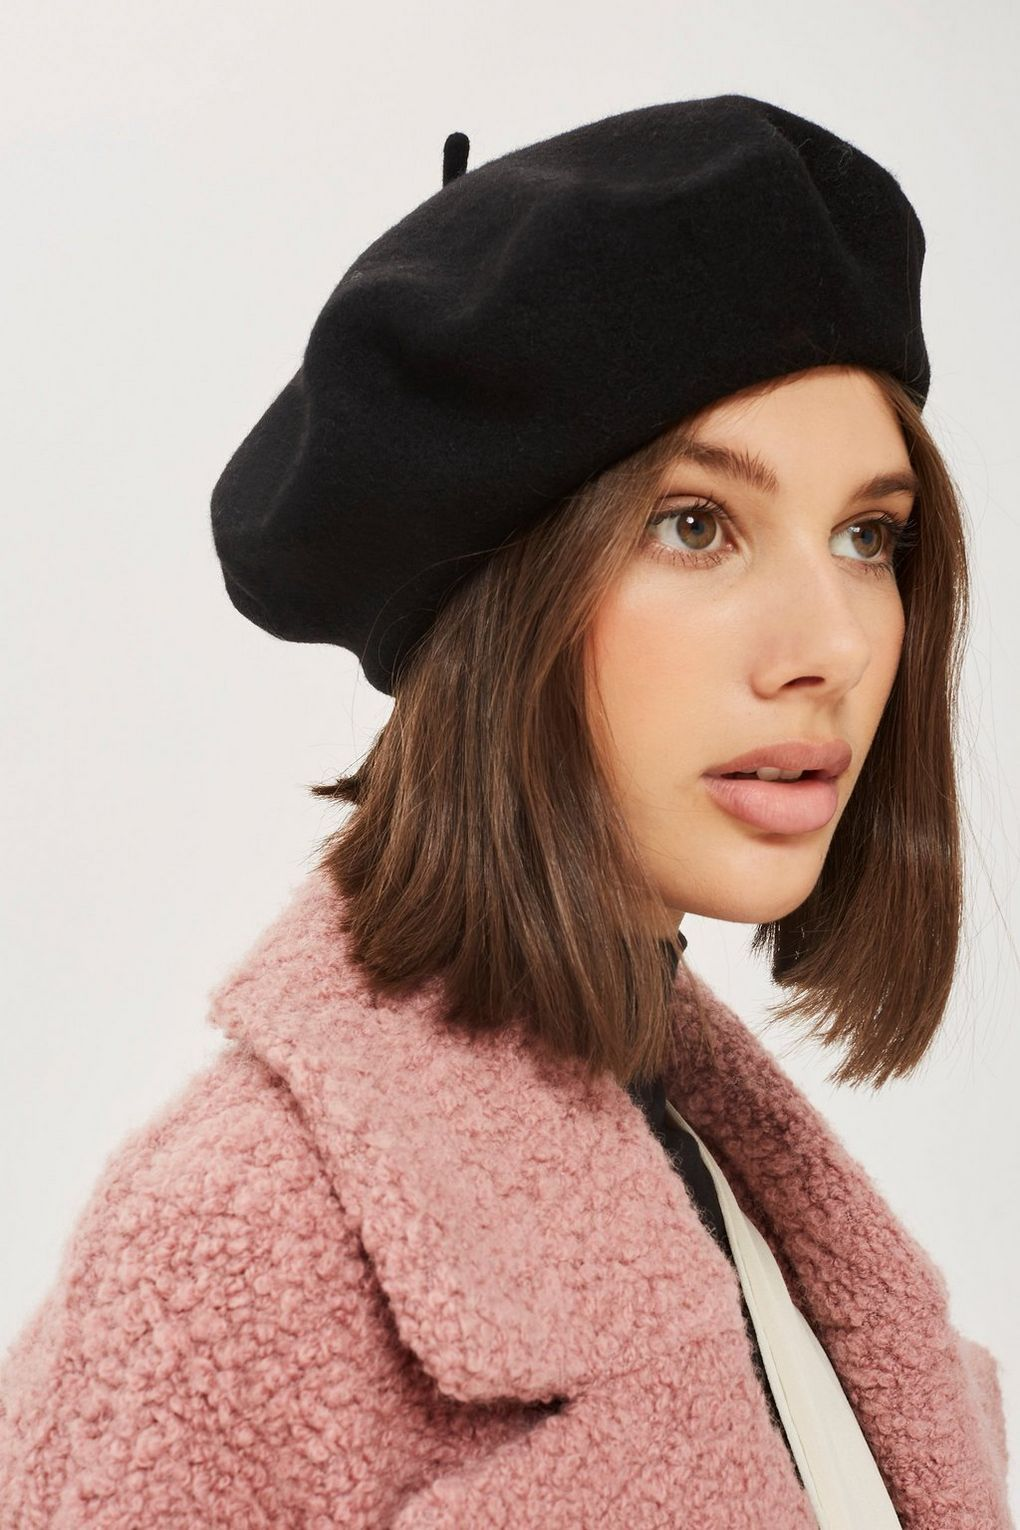 Image Result For Beret Beret Style Outfits With Hats Hat Fashion